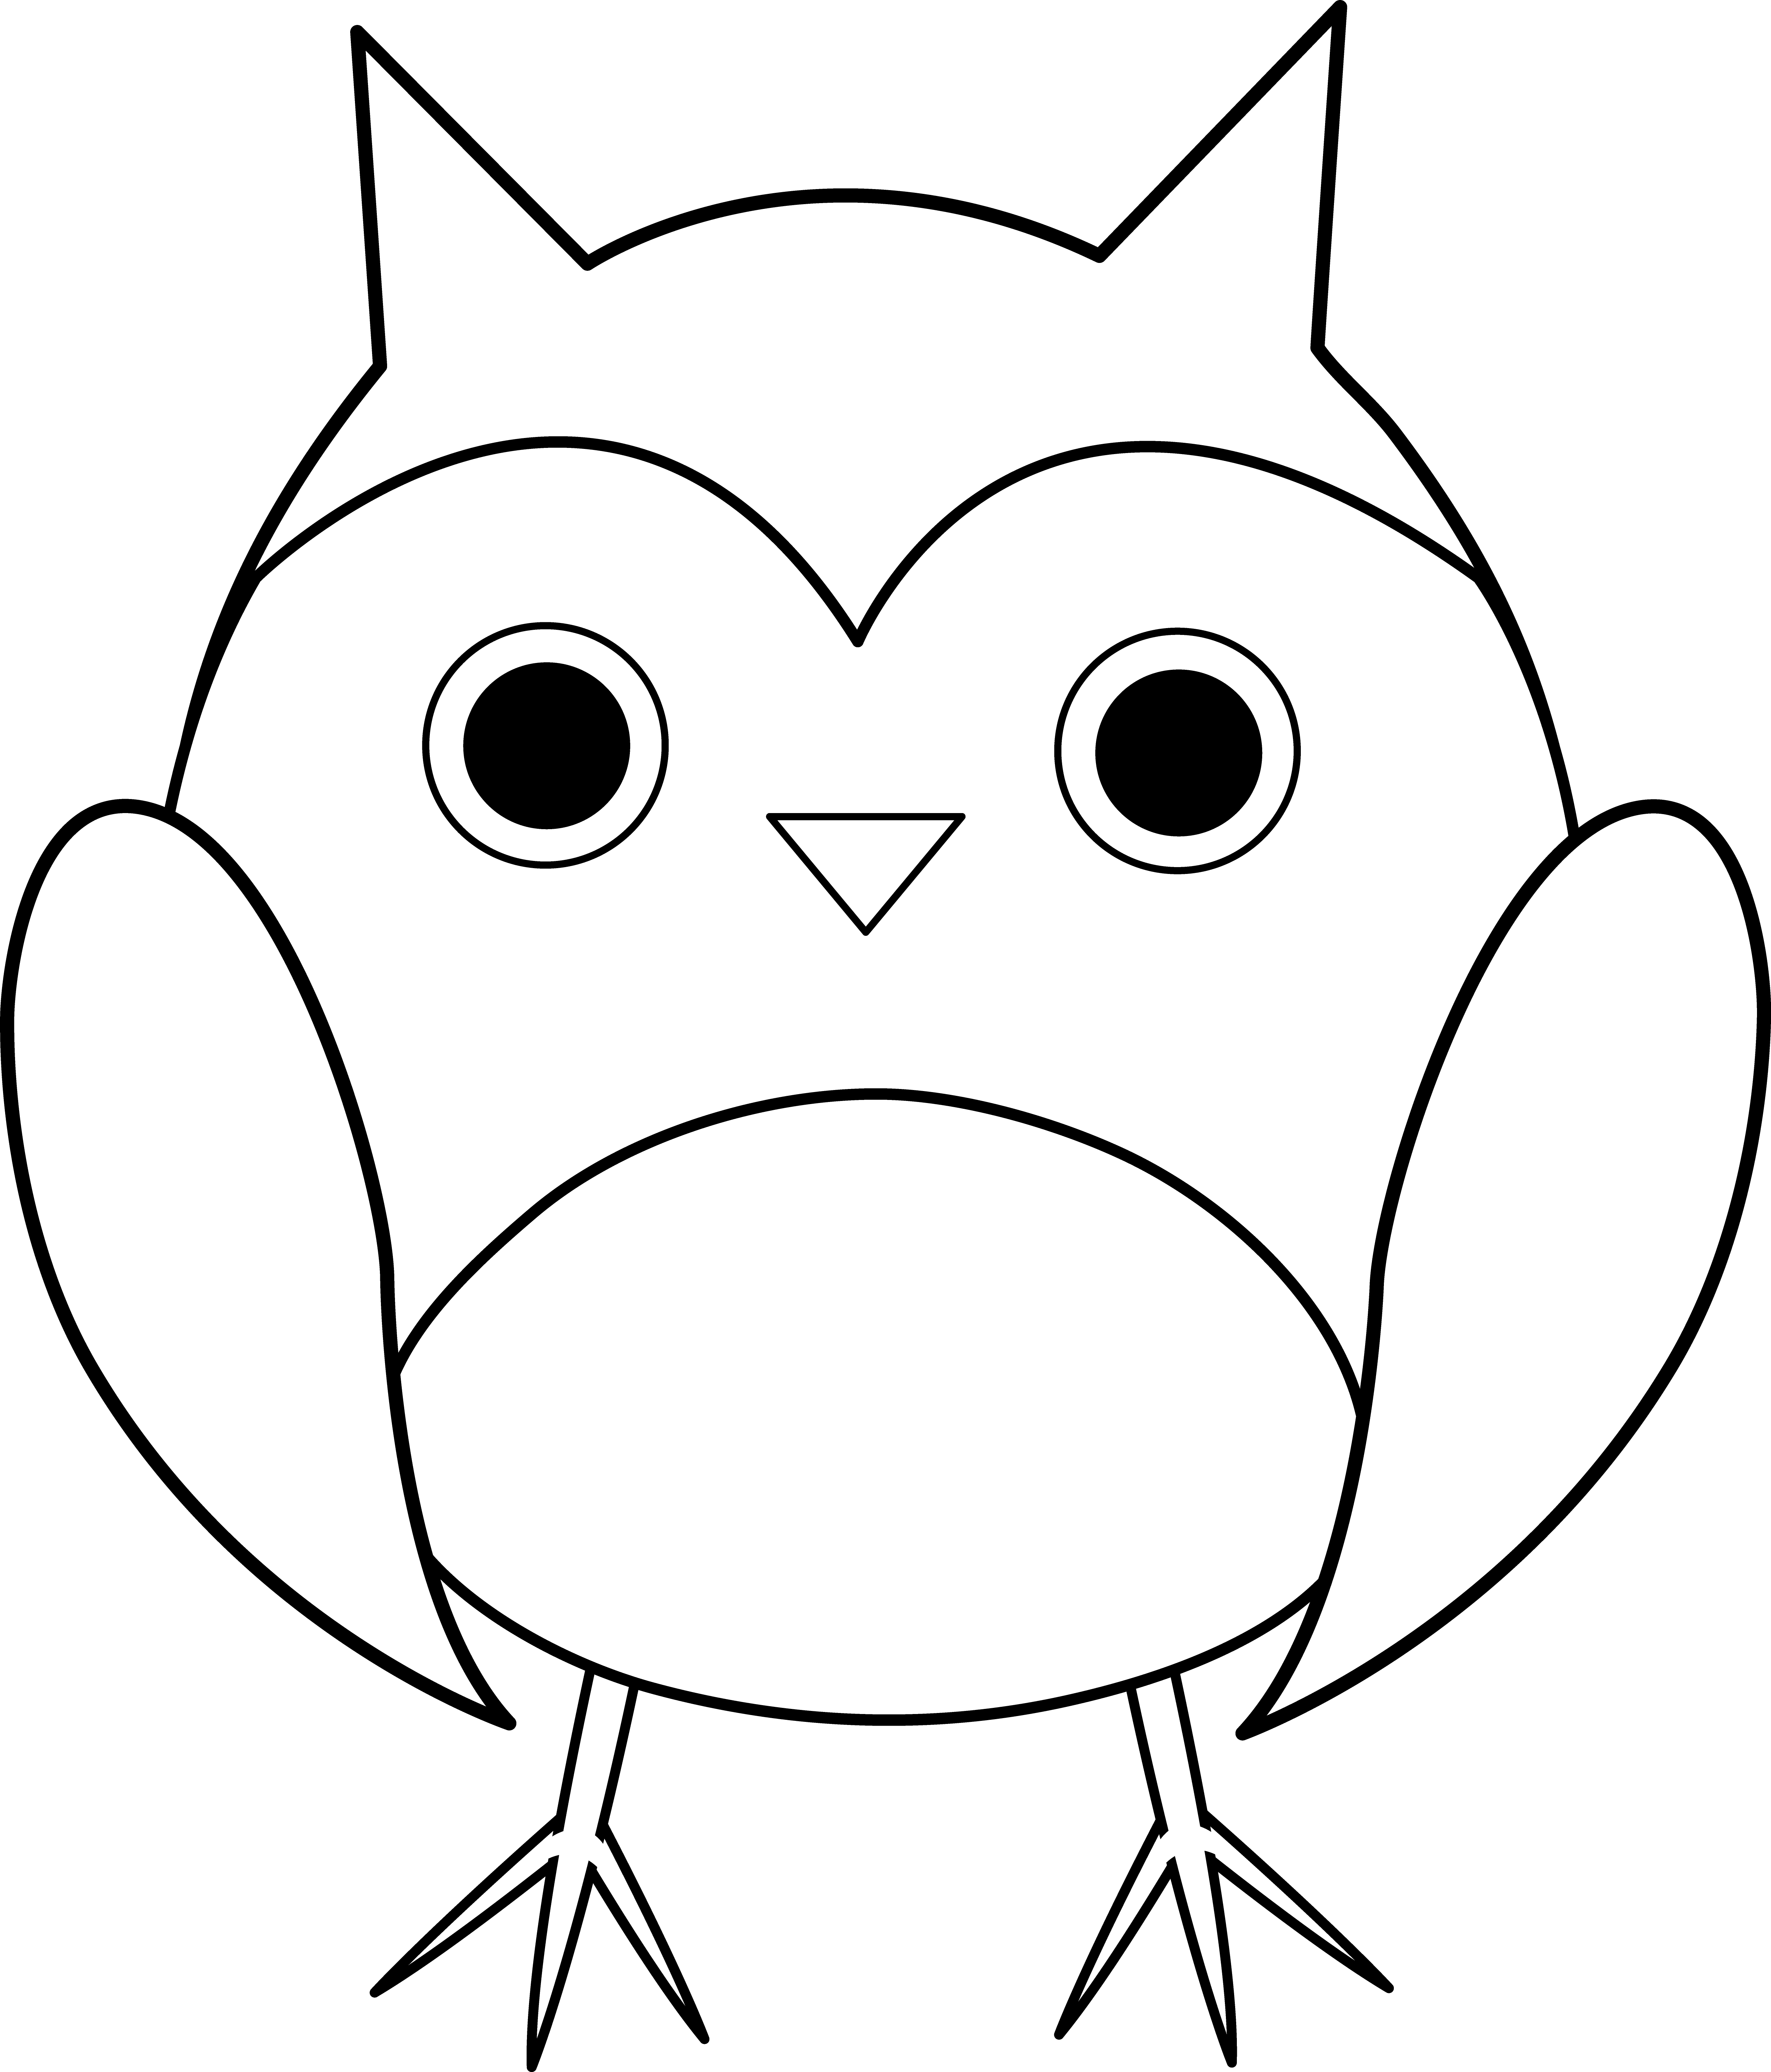 Cute owl eyes clipart black and white clip black and white download Cute owl clipart black and white clipart images gallery for ... clip black and white download